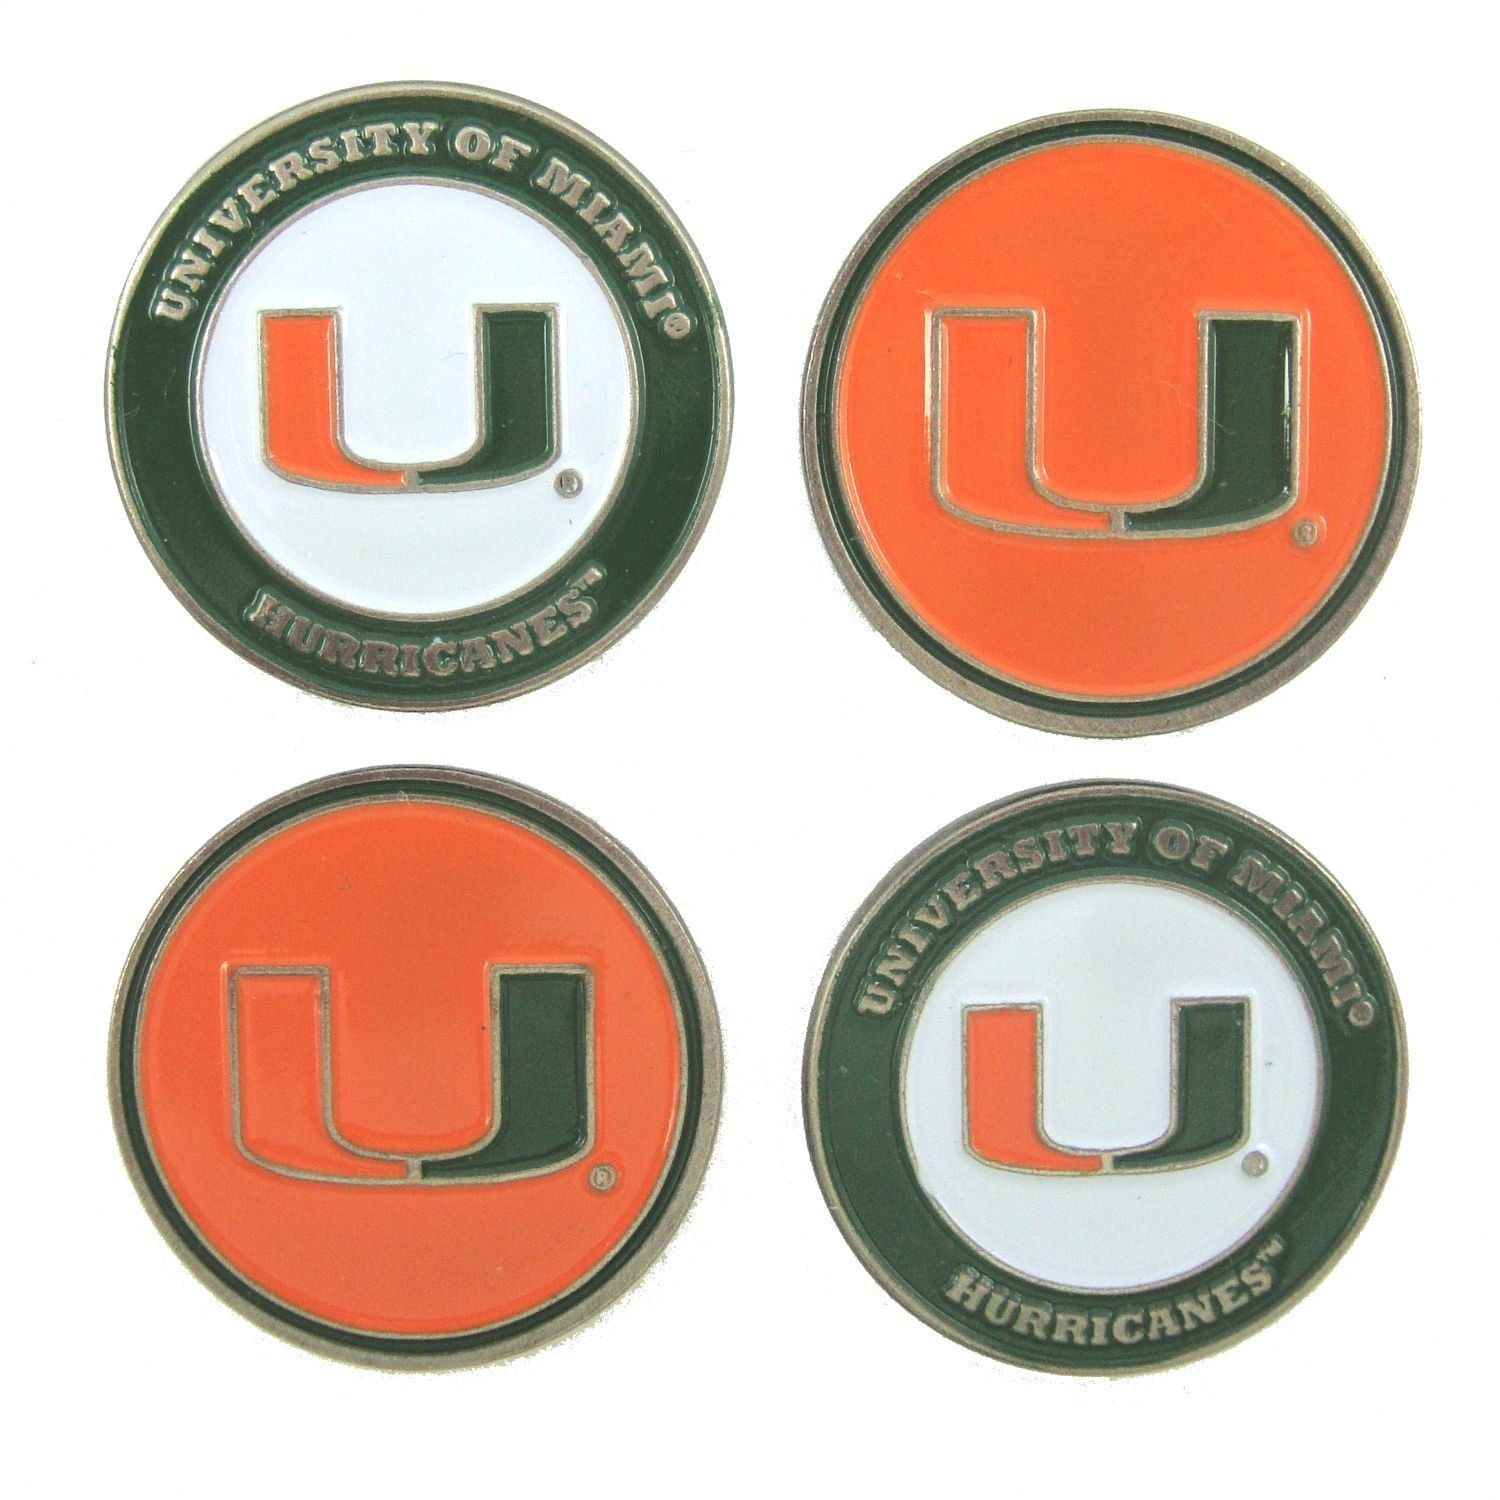 University of Miami 2-sided Golf Ball markers (lot of 4) by Team Golf